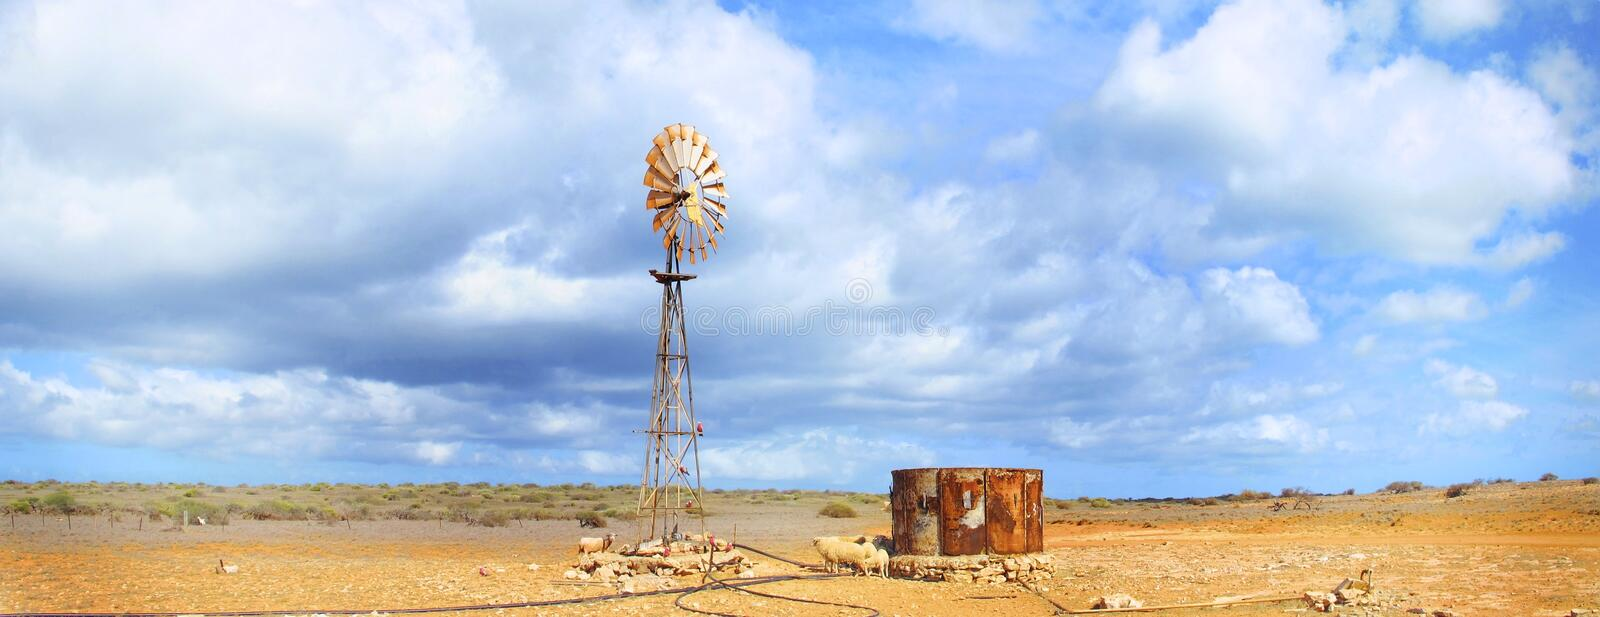 Windmill, Outback, Australia royalty free stock photo